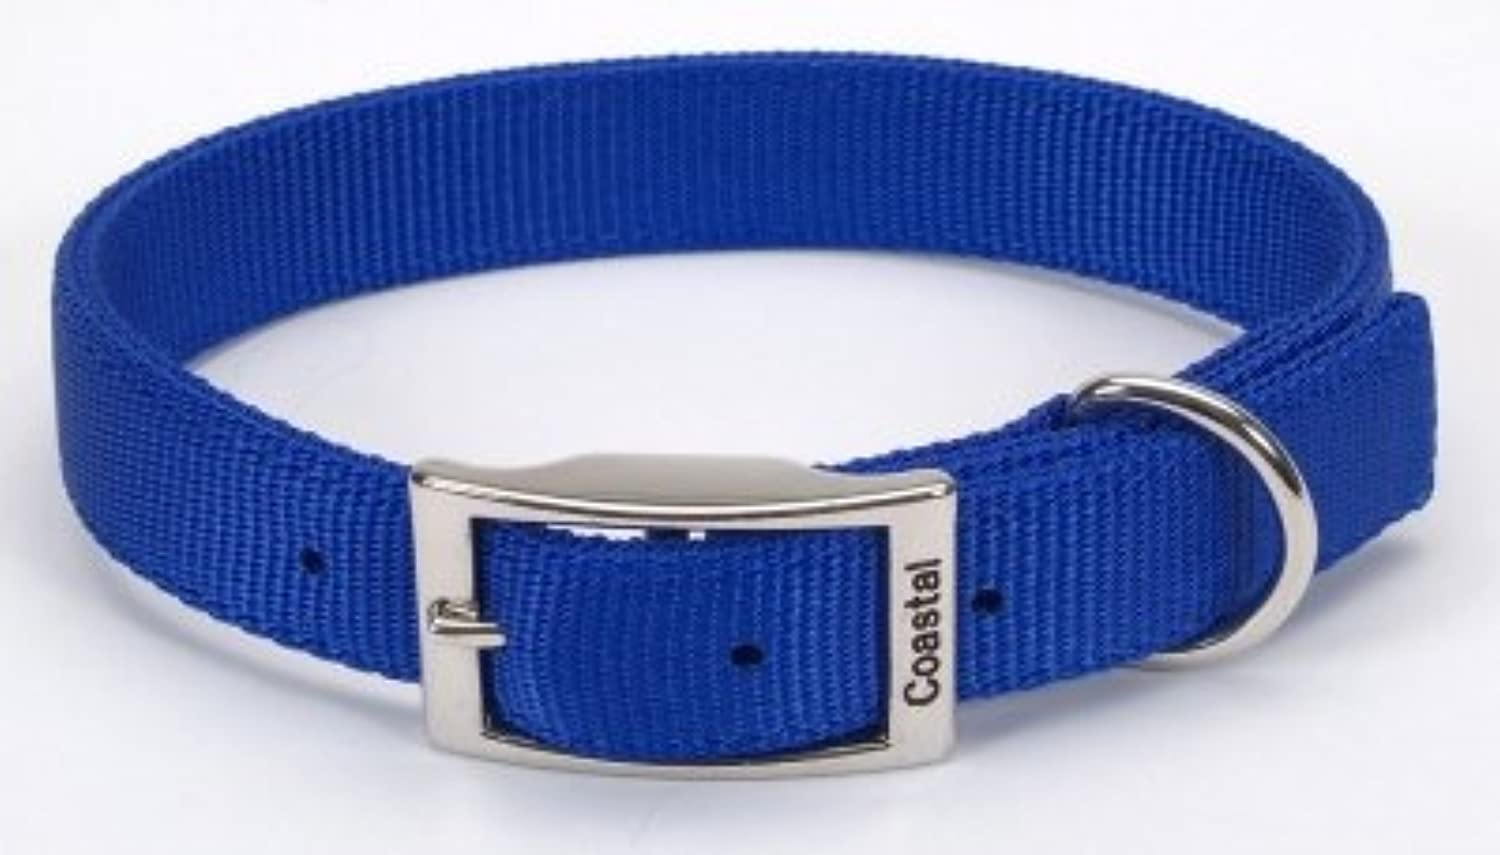 Coastal Pet Products DCP290120blue Nylon Double Dog Collar, 1 by 20Inch, bluee